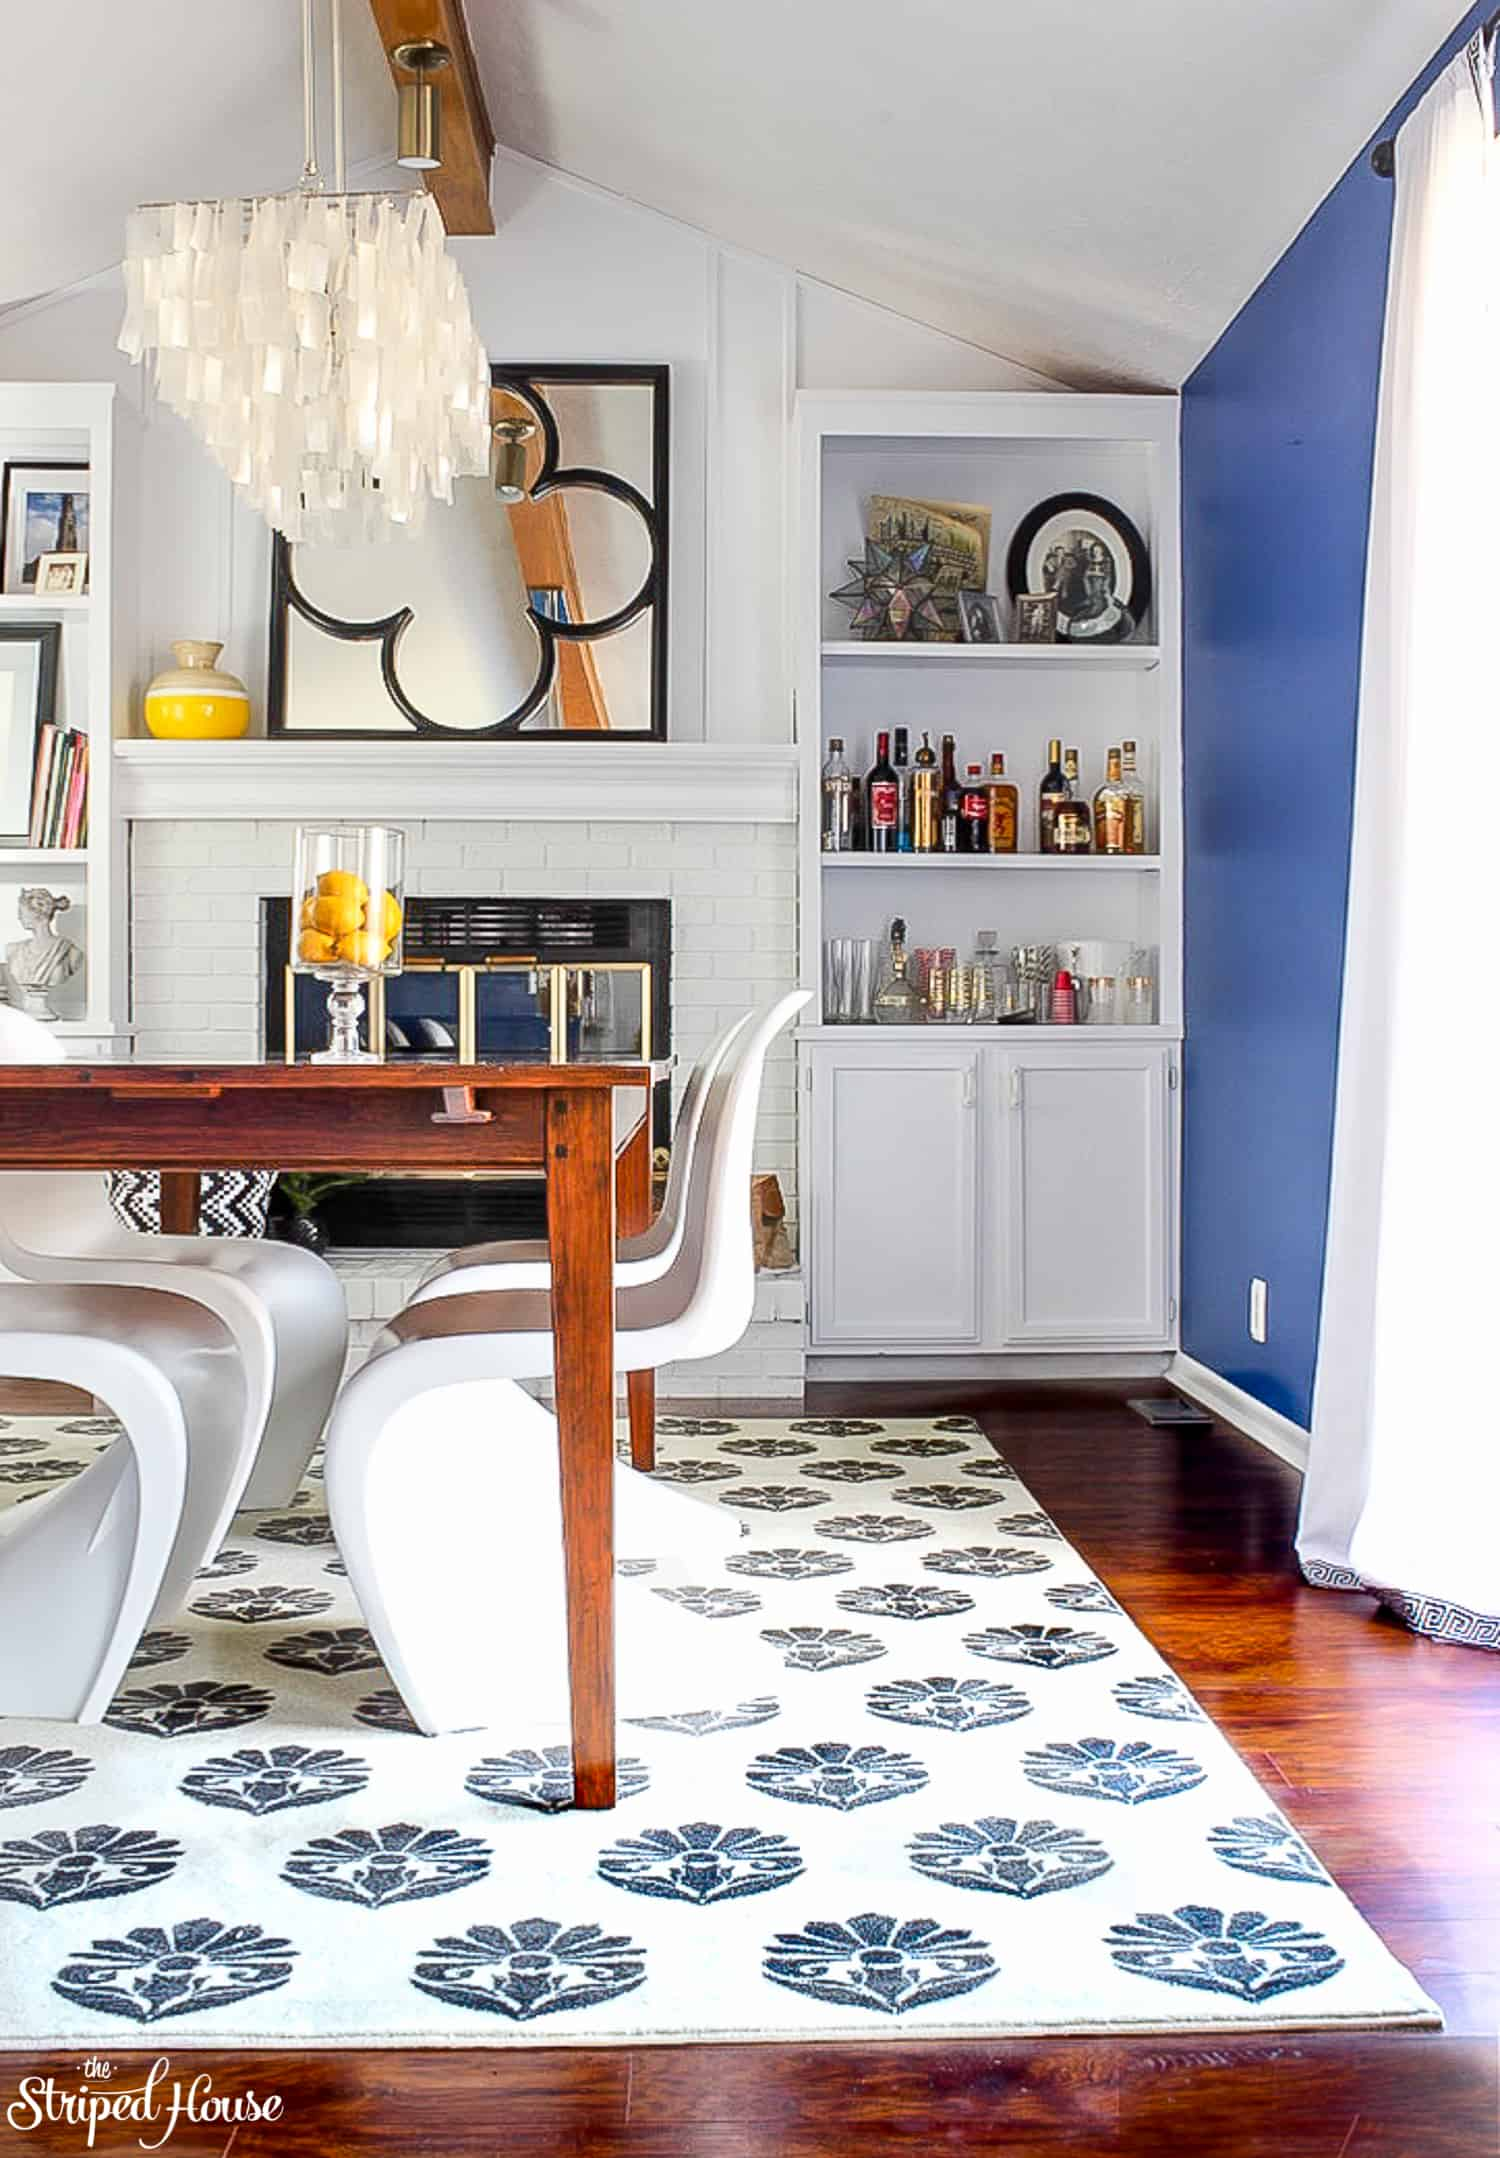 Come on it and see my dining room spring home tour with Mohawk.